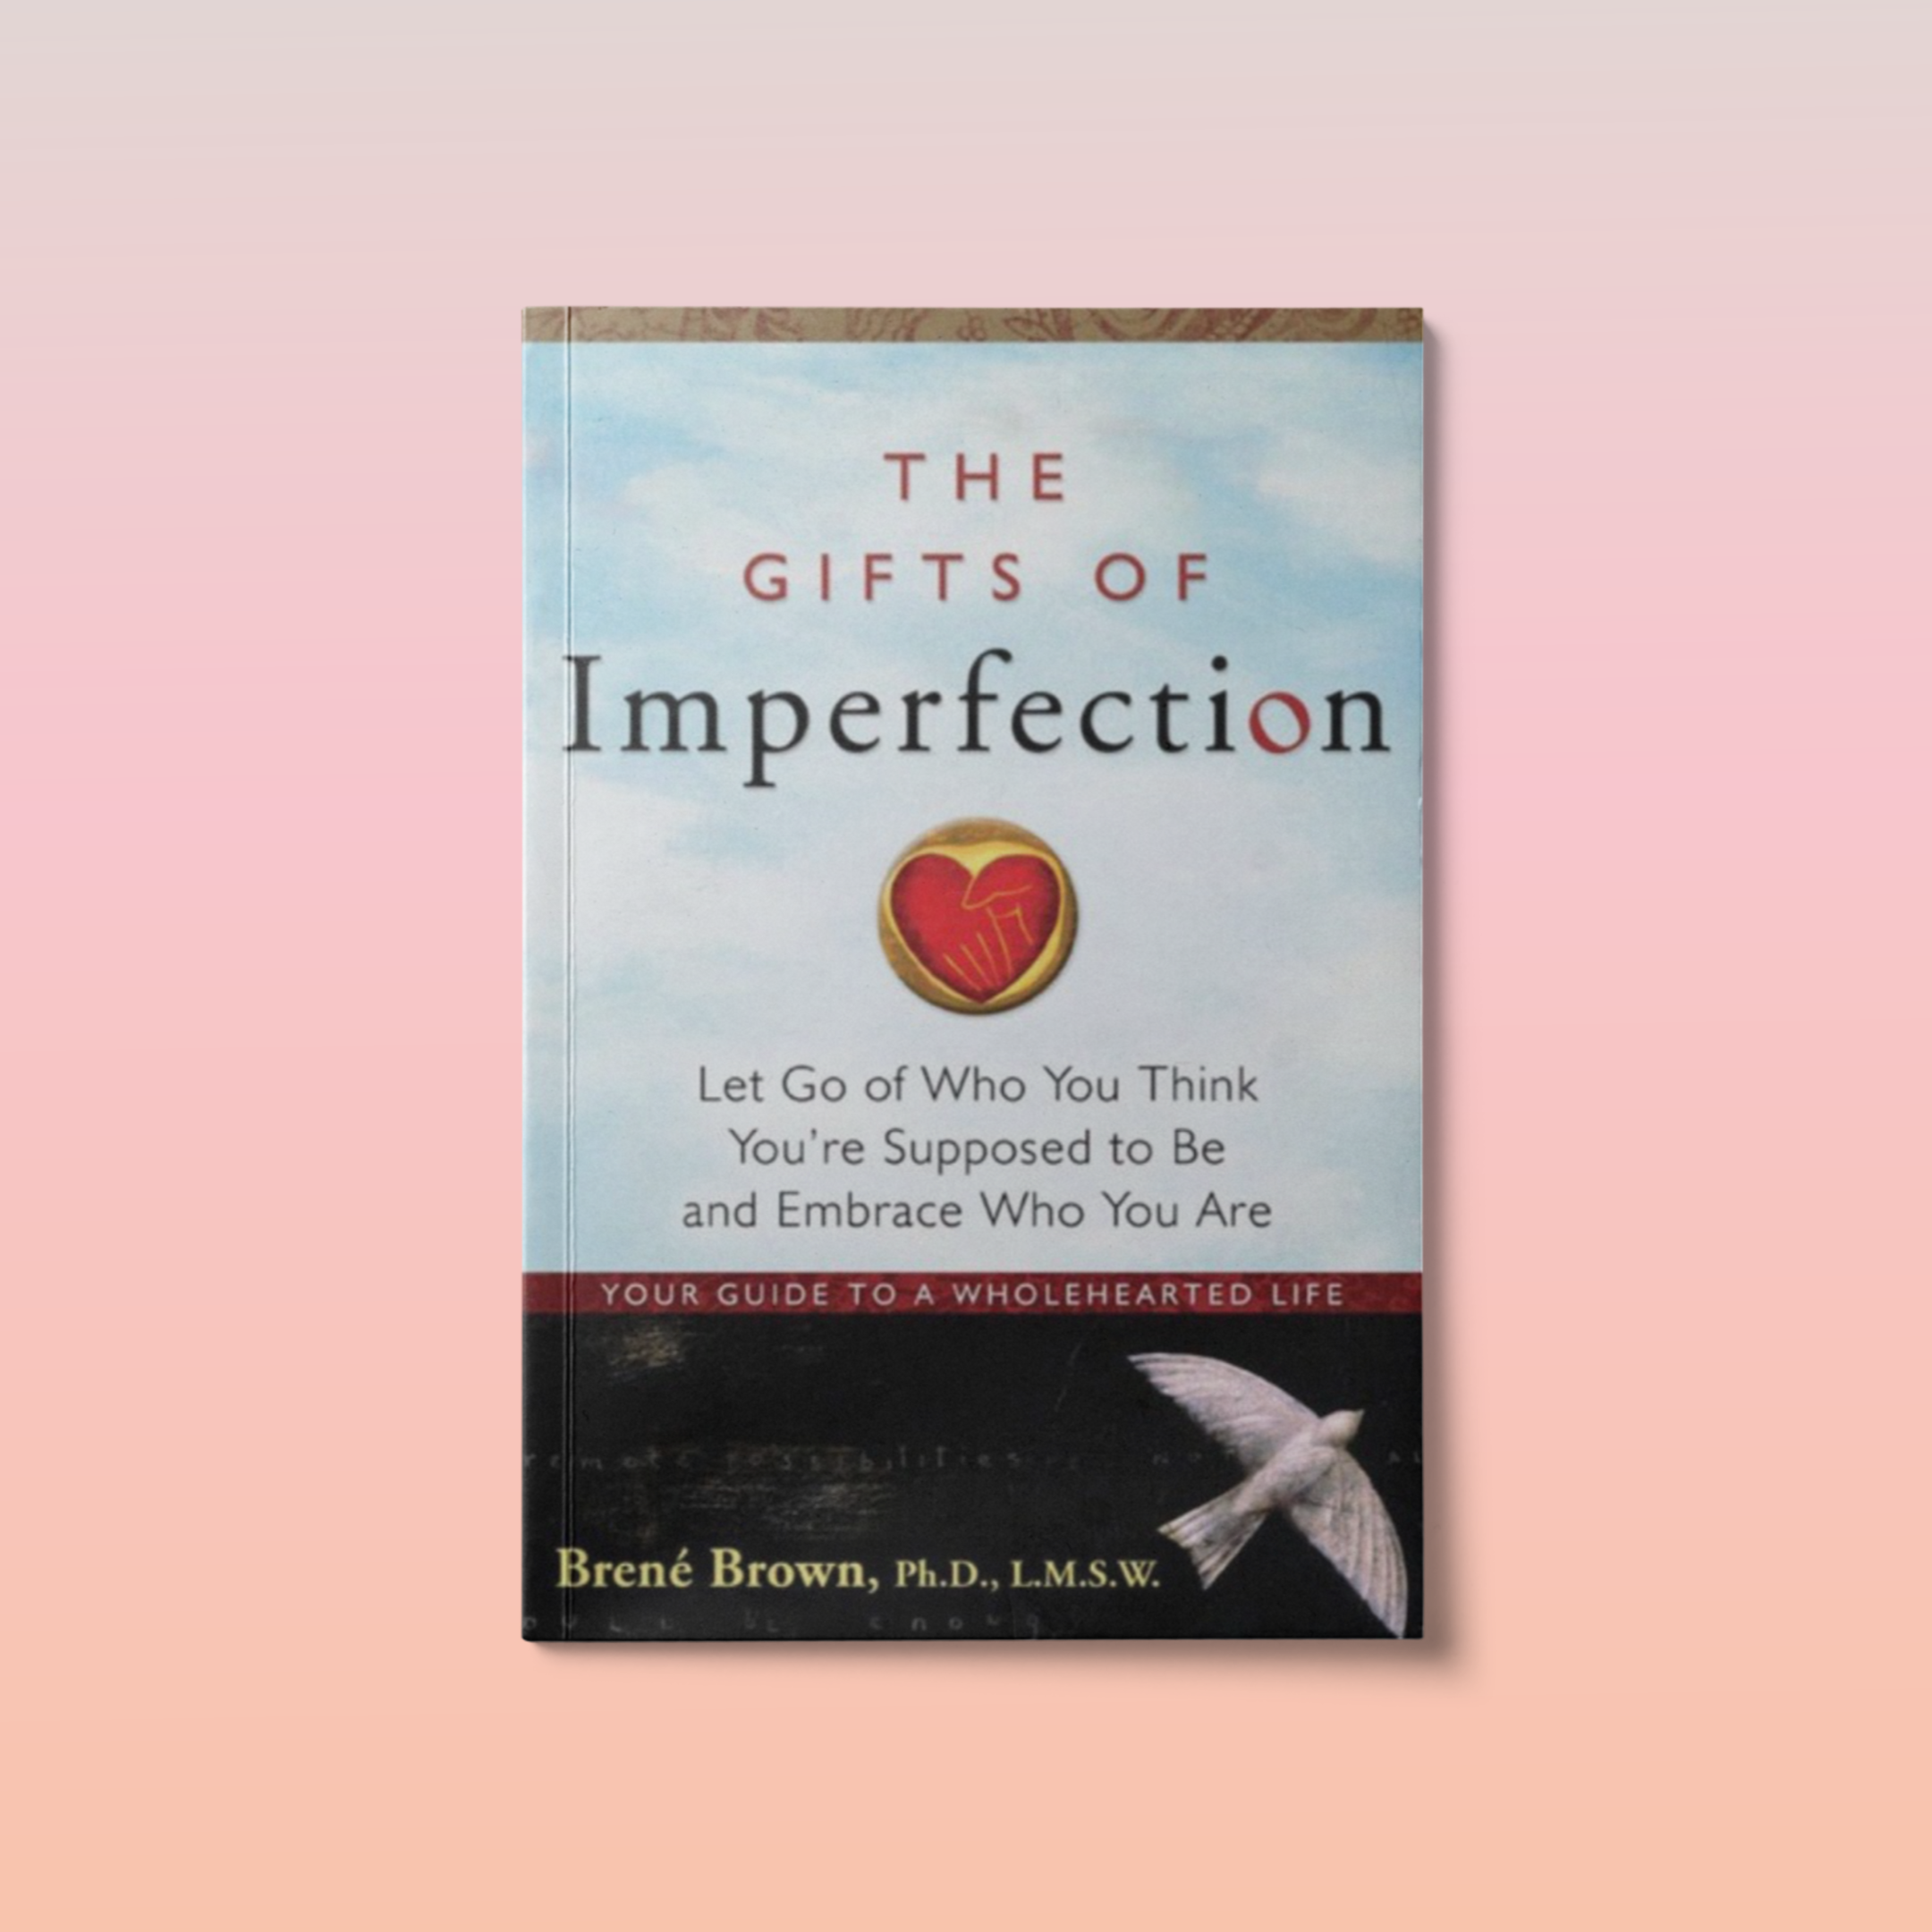 bookclub-december-giftsofimperfection.png